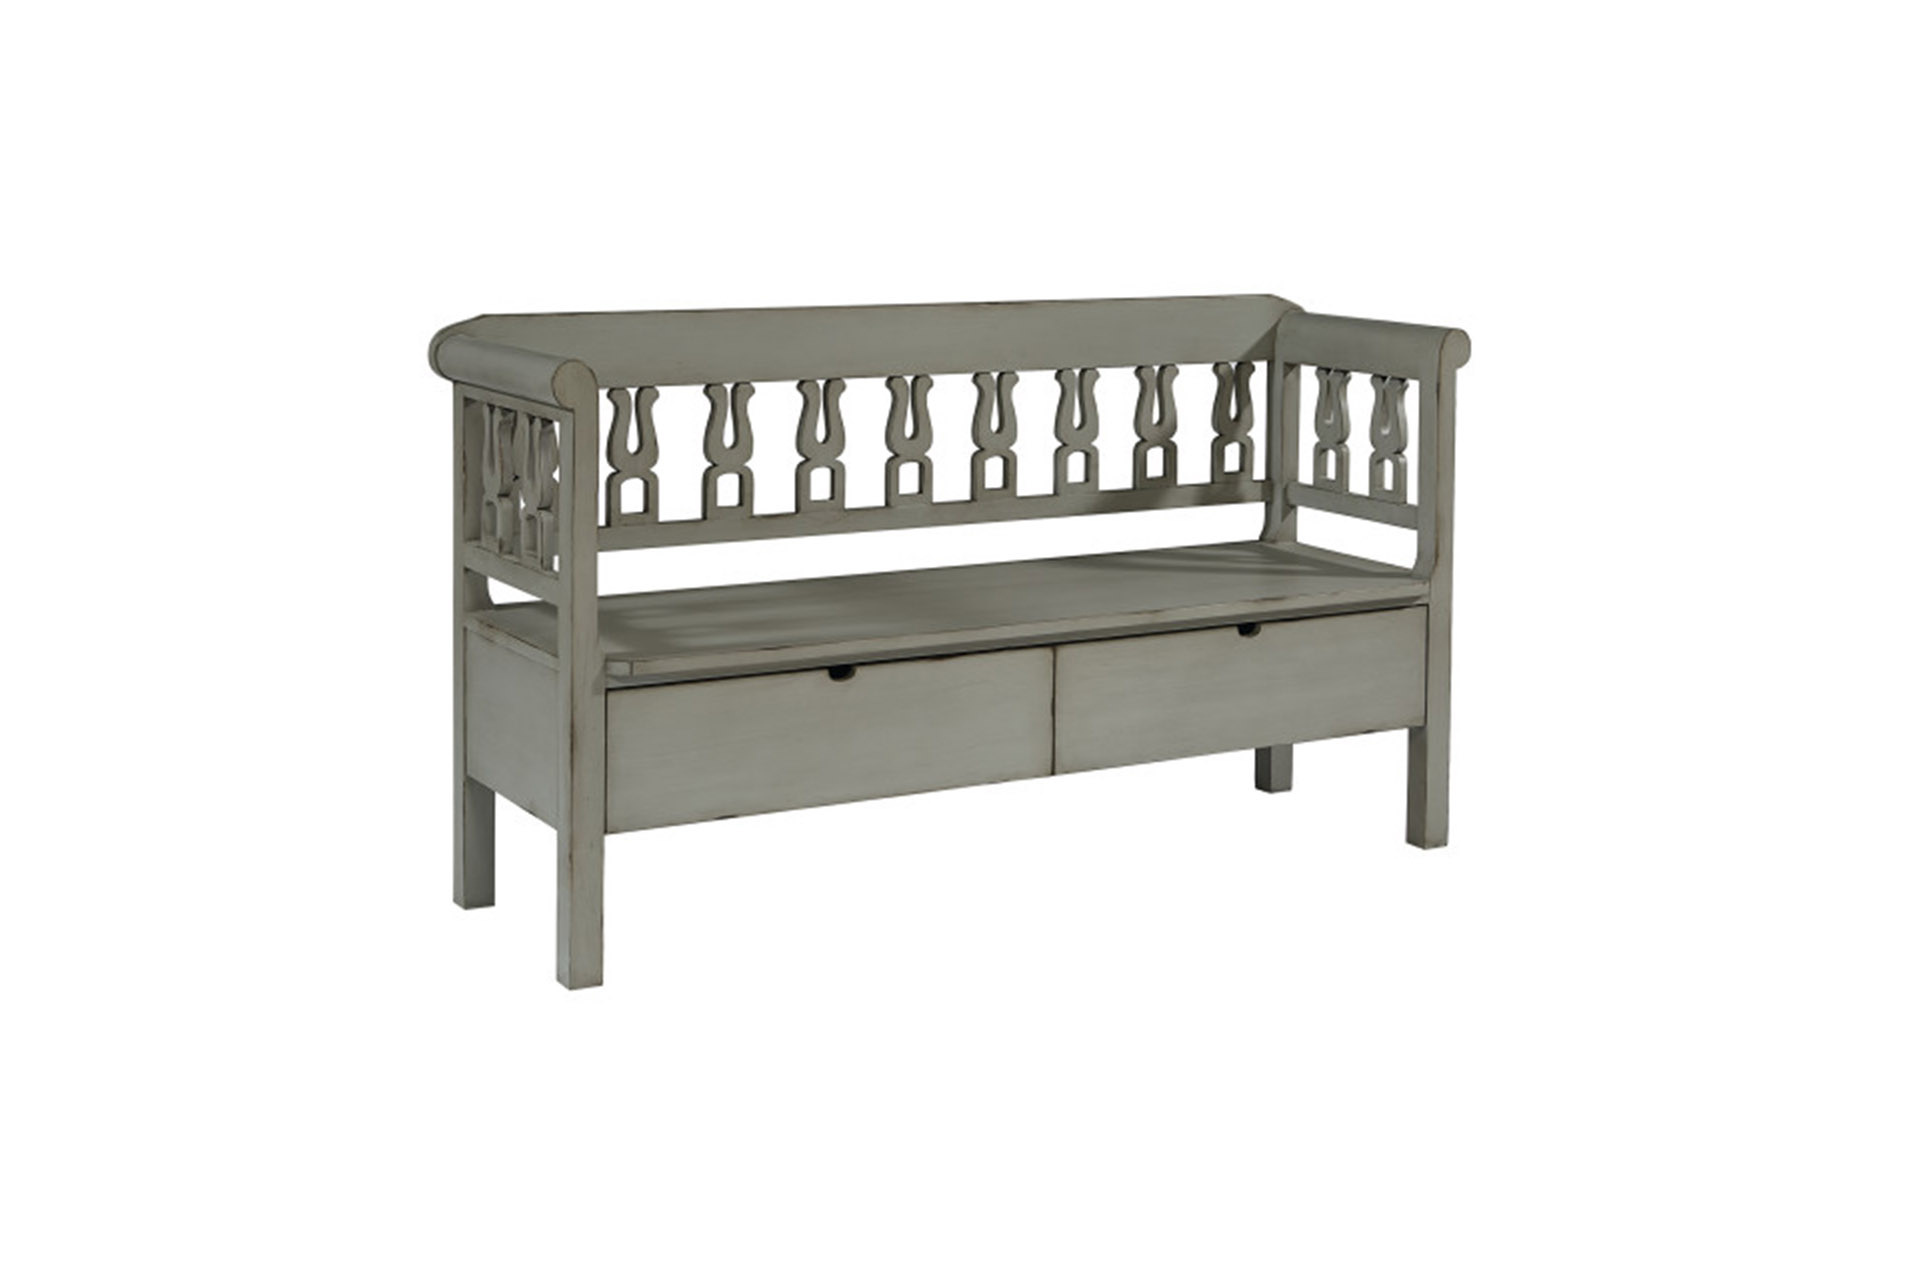 Charmant Magnolia Home Dove Grey Hall Bench With Storage By Joanna Gaines (Qty: 1)  Has Been Successfully Added To Your Cart.